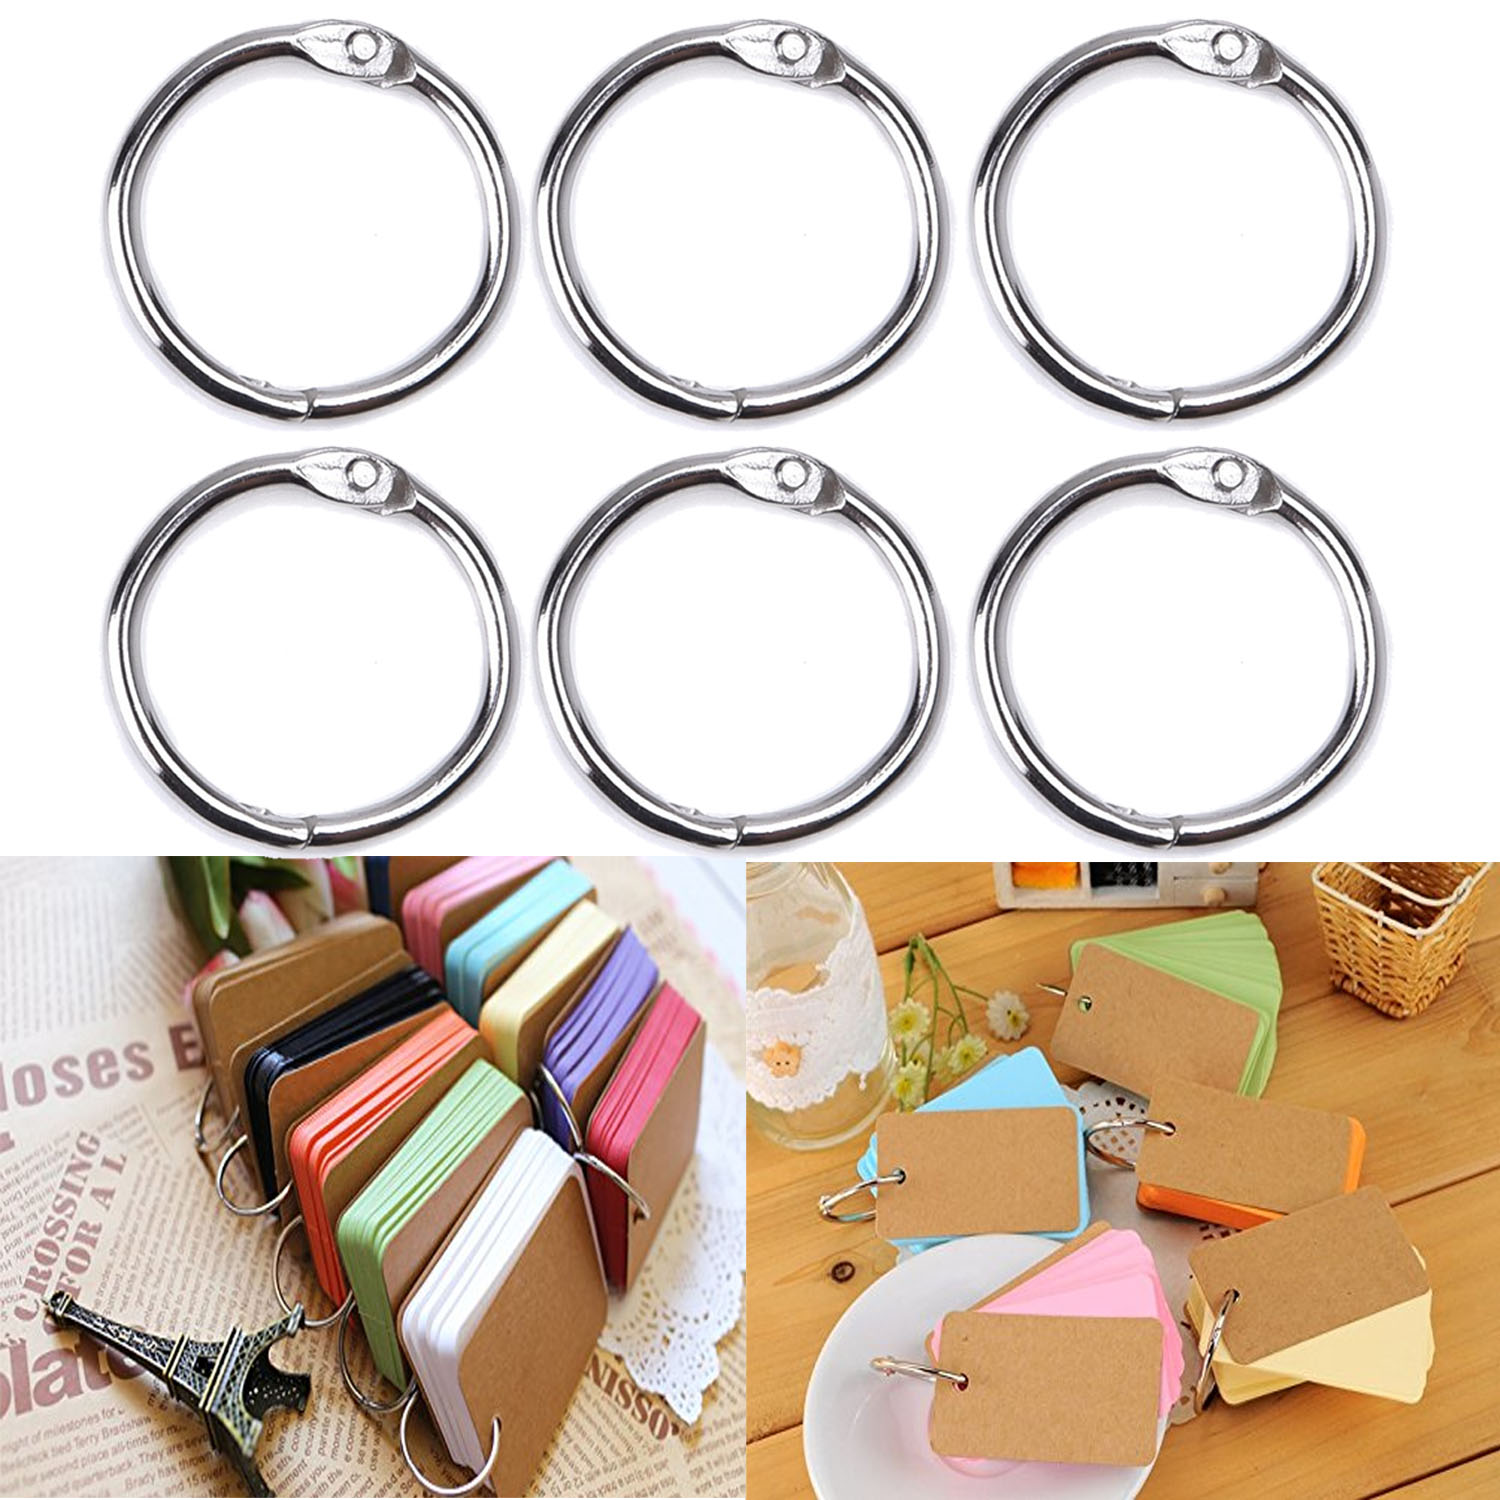 100pcs 25mm diameter metal loose leaf ring binder binding for American crafts 3 ring scrapbook album binder